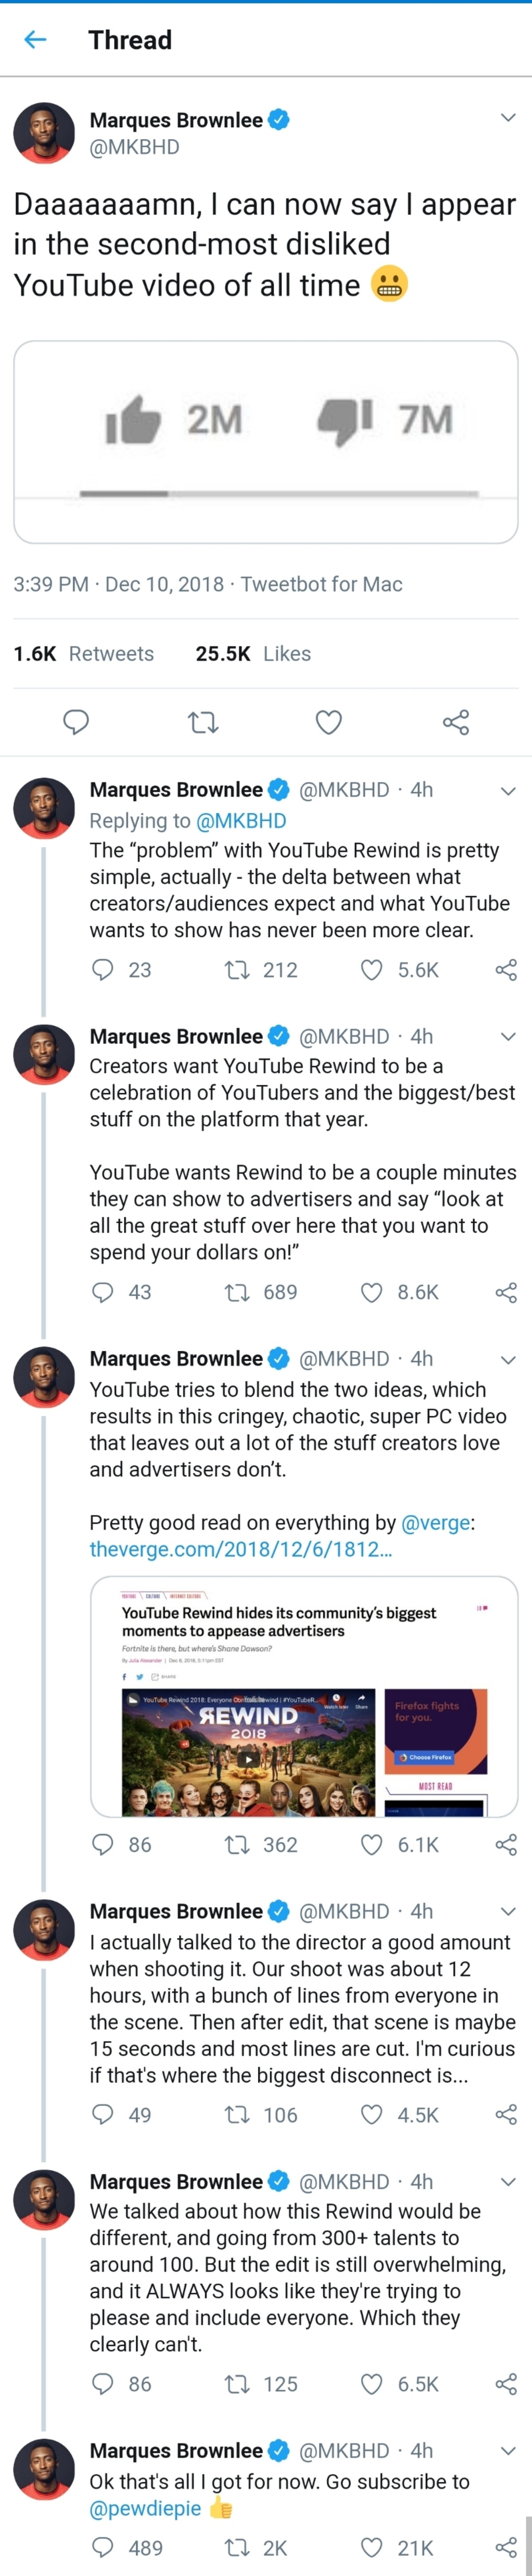 Disliked video. https://mobile.twitter.com/MKBHD/status/1072138771779461121?s=19.. Like the last Blizcon, Youtube Rewind is now for investors/advertisers rather than its actual audience.